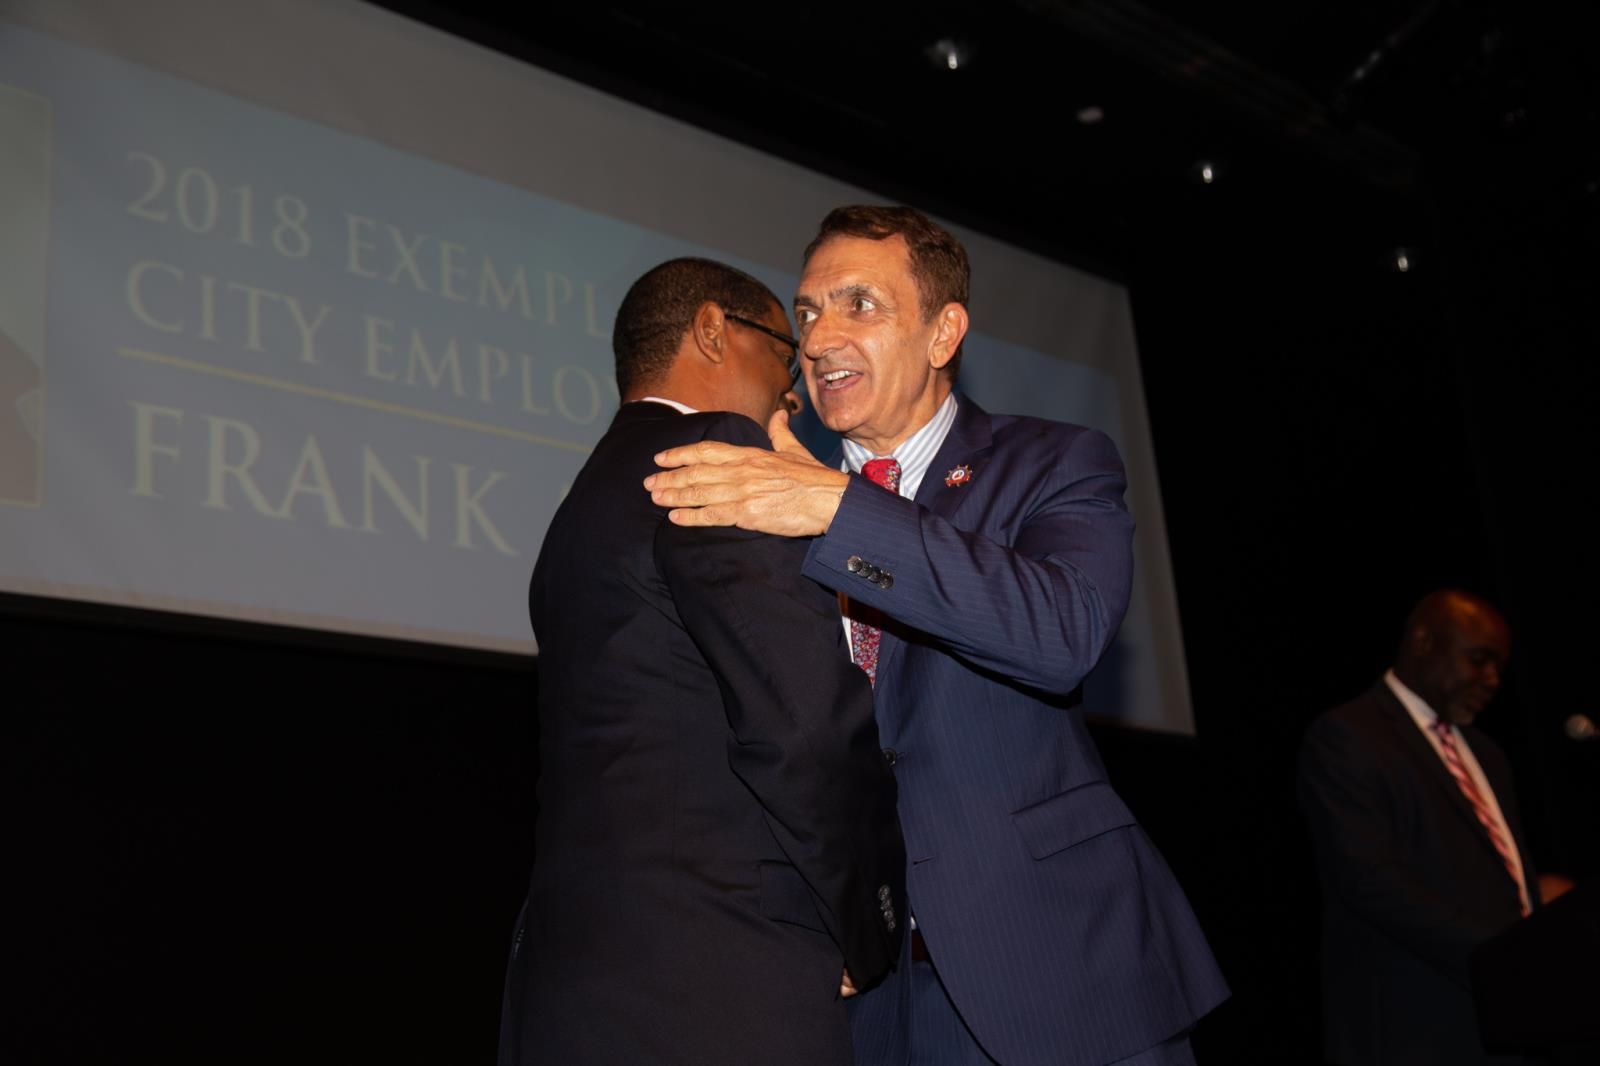 Mayor Dean Trantalis with 2018 Exemplary Former City Employee Frank Adderley